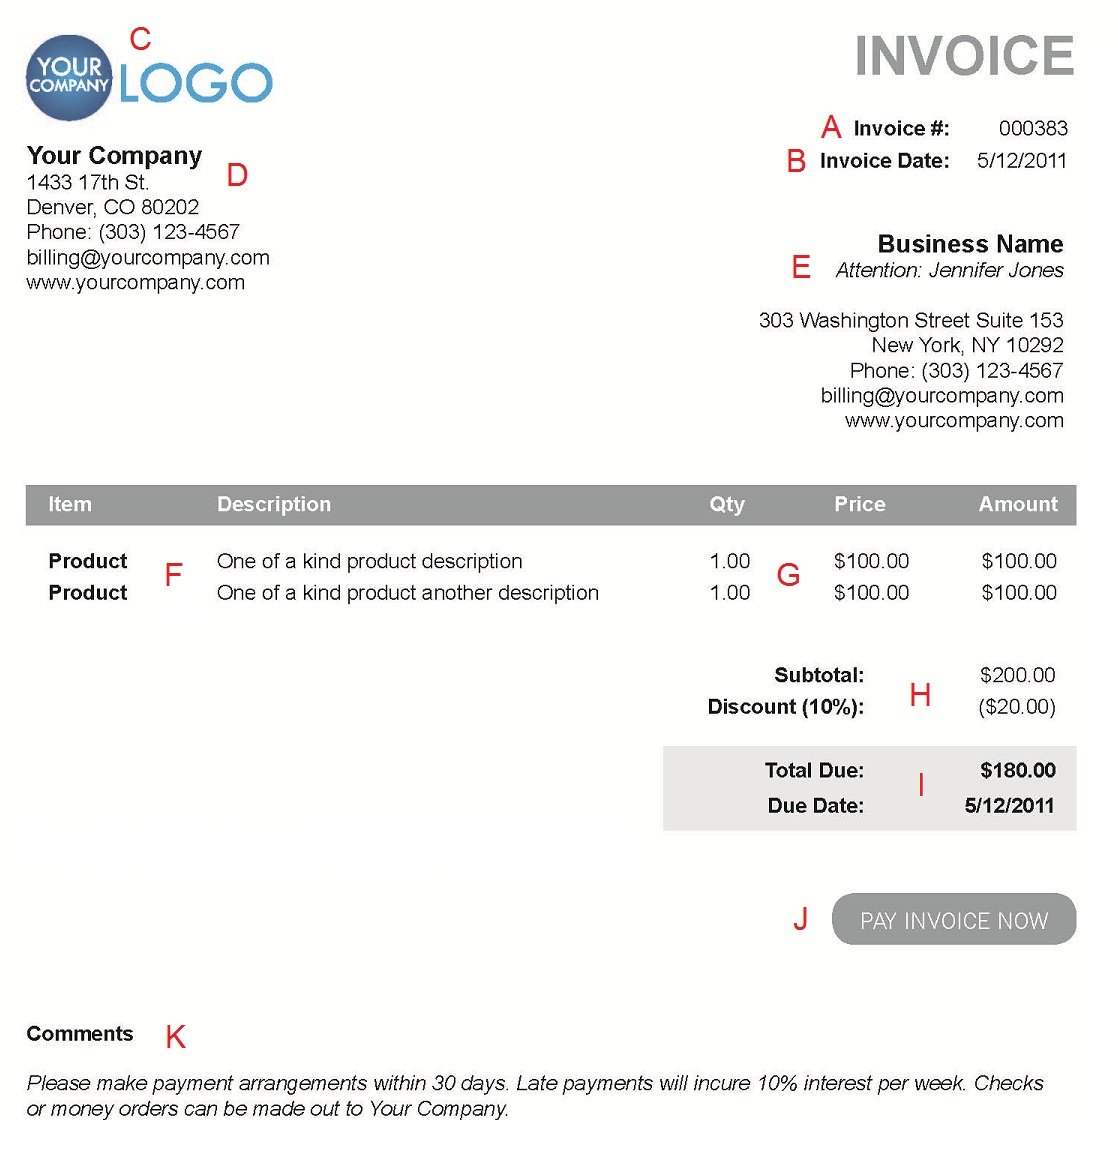 Reliefworkersus  Ravishing The  Different Sections Of An Electronic Payment Invoice With Exciting A  With Cool How To Fill Out An Invoice Also Invoice Date In Addition Invoic And Paypal Invoice Fees As Well As Dell Invoice Additionally How To Invoice From Paysimplecom With Reliefworkersus  Exciting The  Different Sections Of An Electronic Payment Invoice With Cool A  And Ravishing How To Fill Out An Invoice Also Invoice Date In Addition Invoic From Paysimplecom